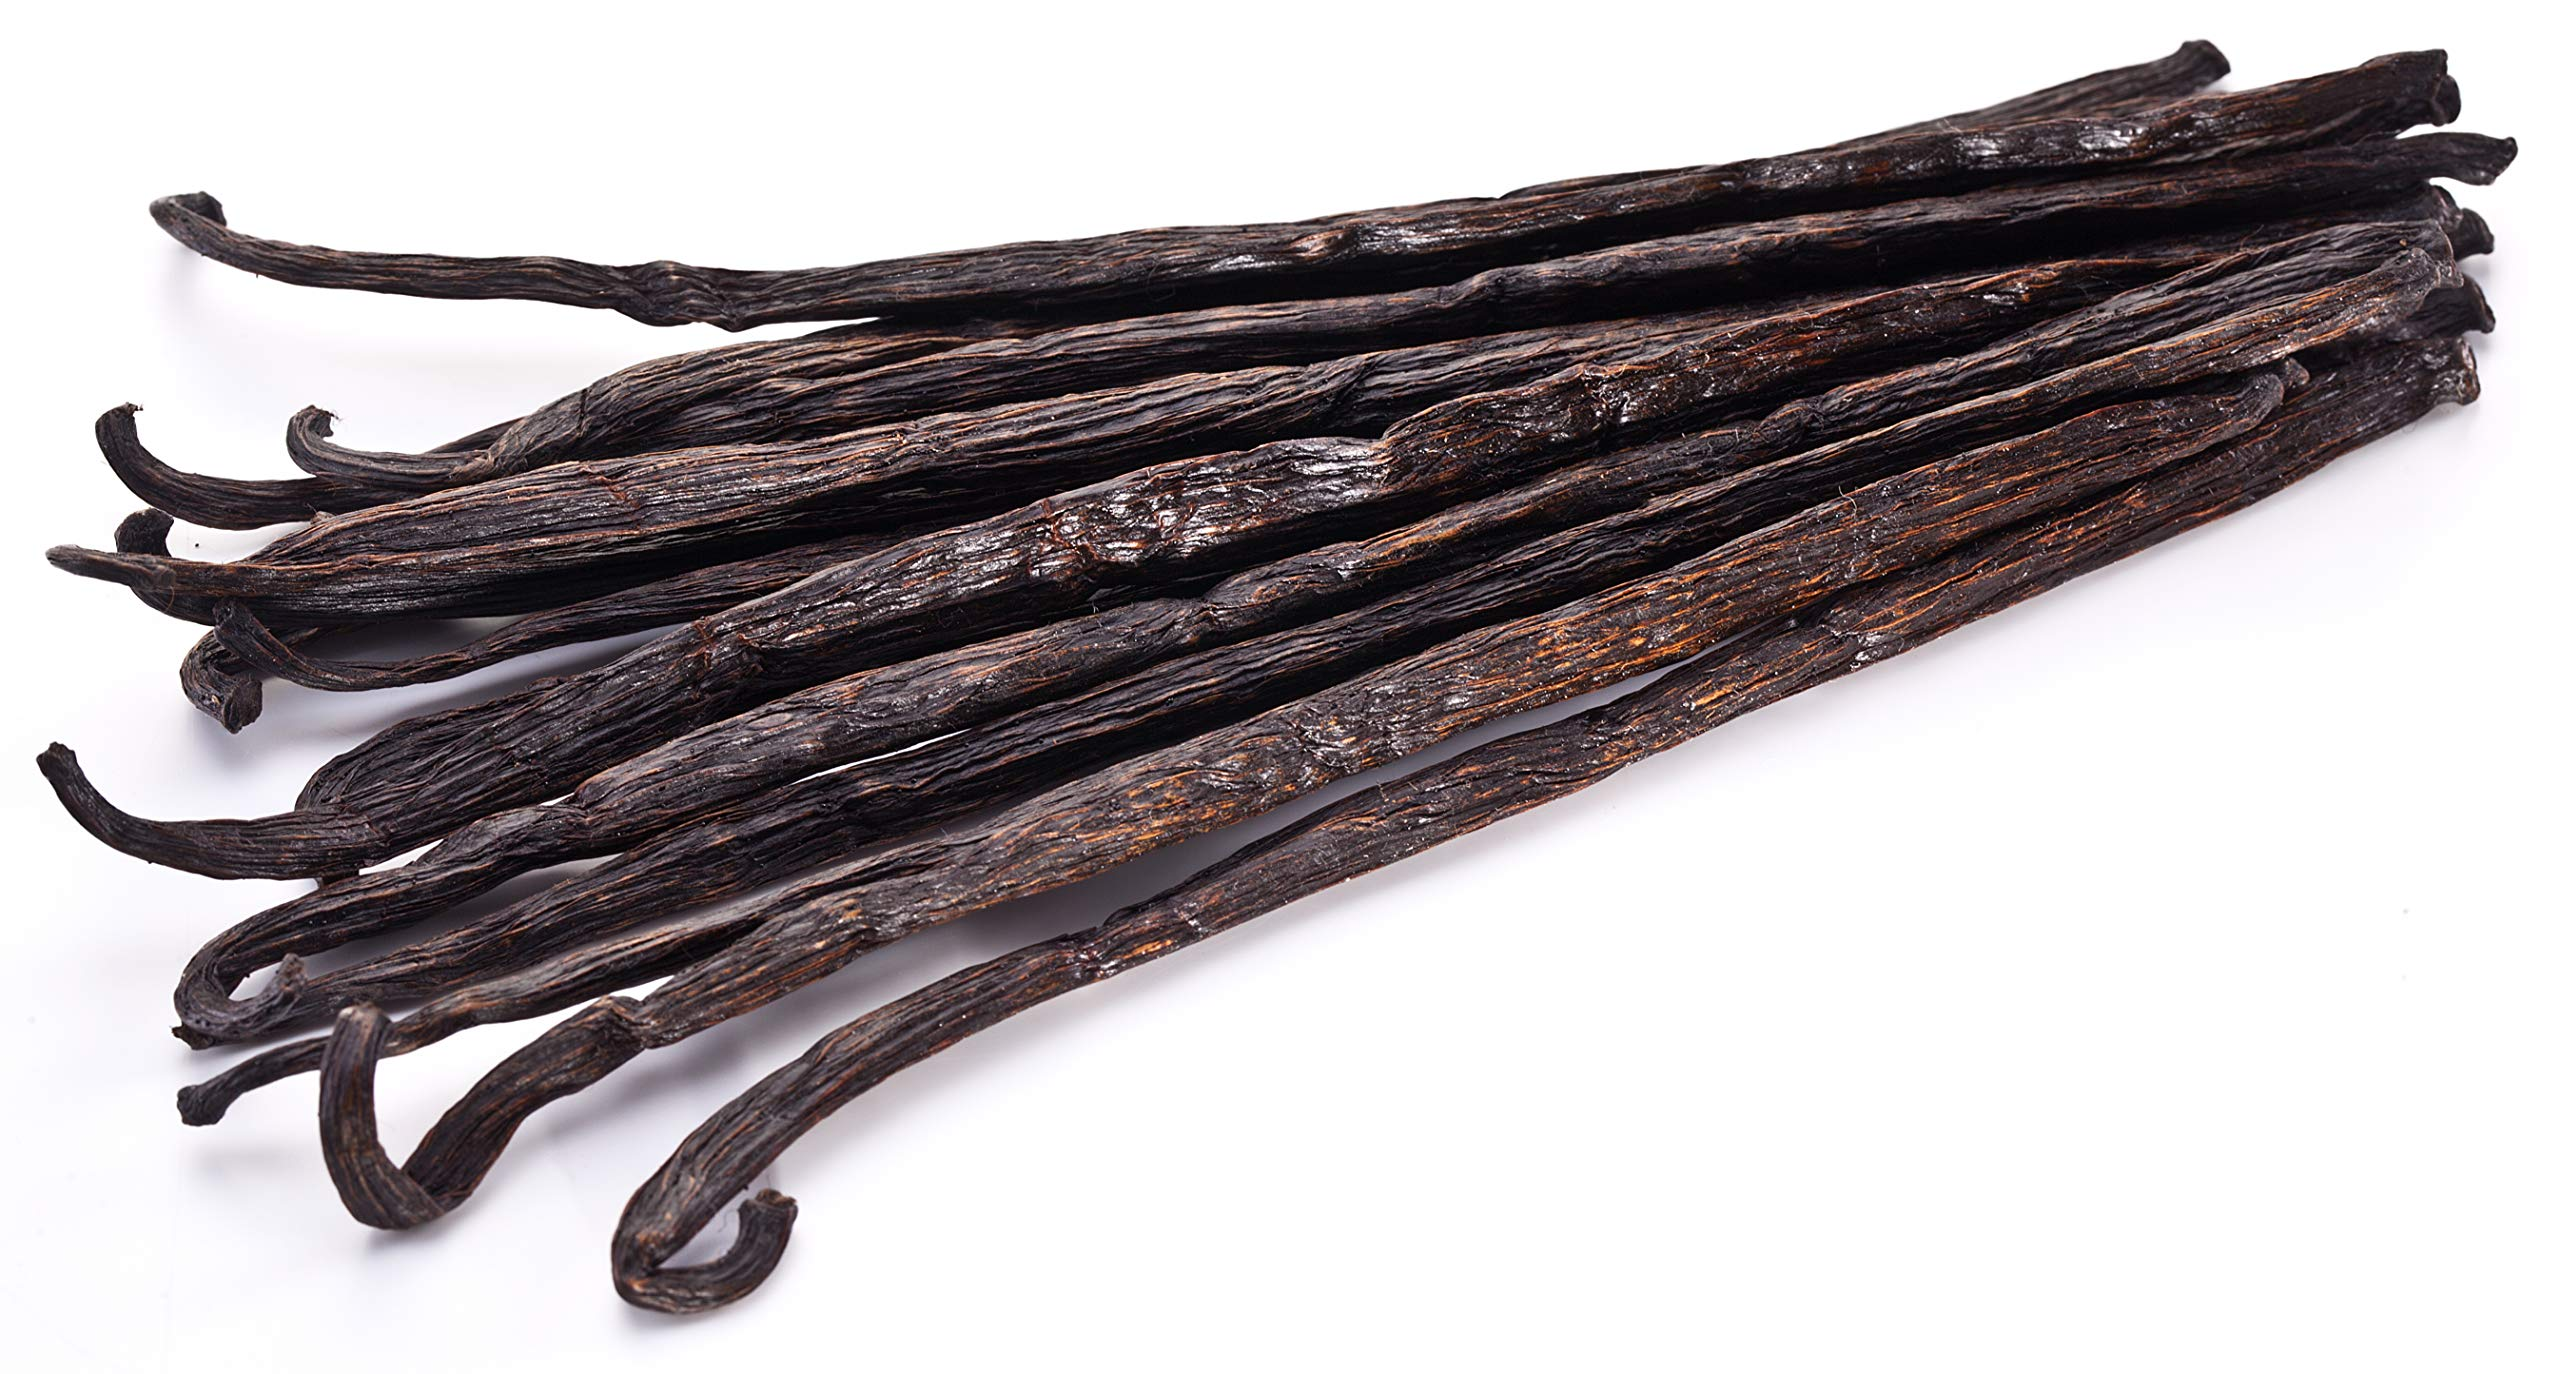 25 Vanilla Beans - Whole Extract Grade B Pods for Baking, Homemade Extract, Brewing, Coffee, Cooking - (Tahitian) by Vanilla Bean Kings